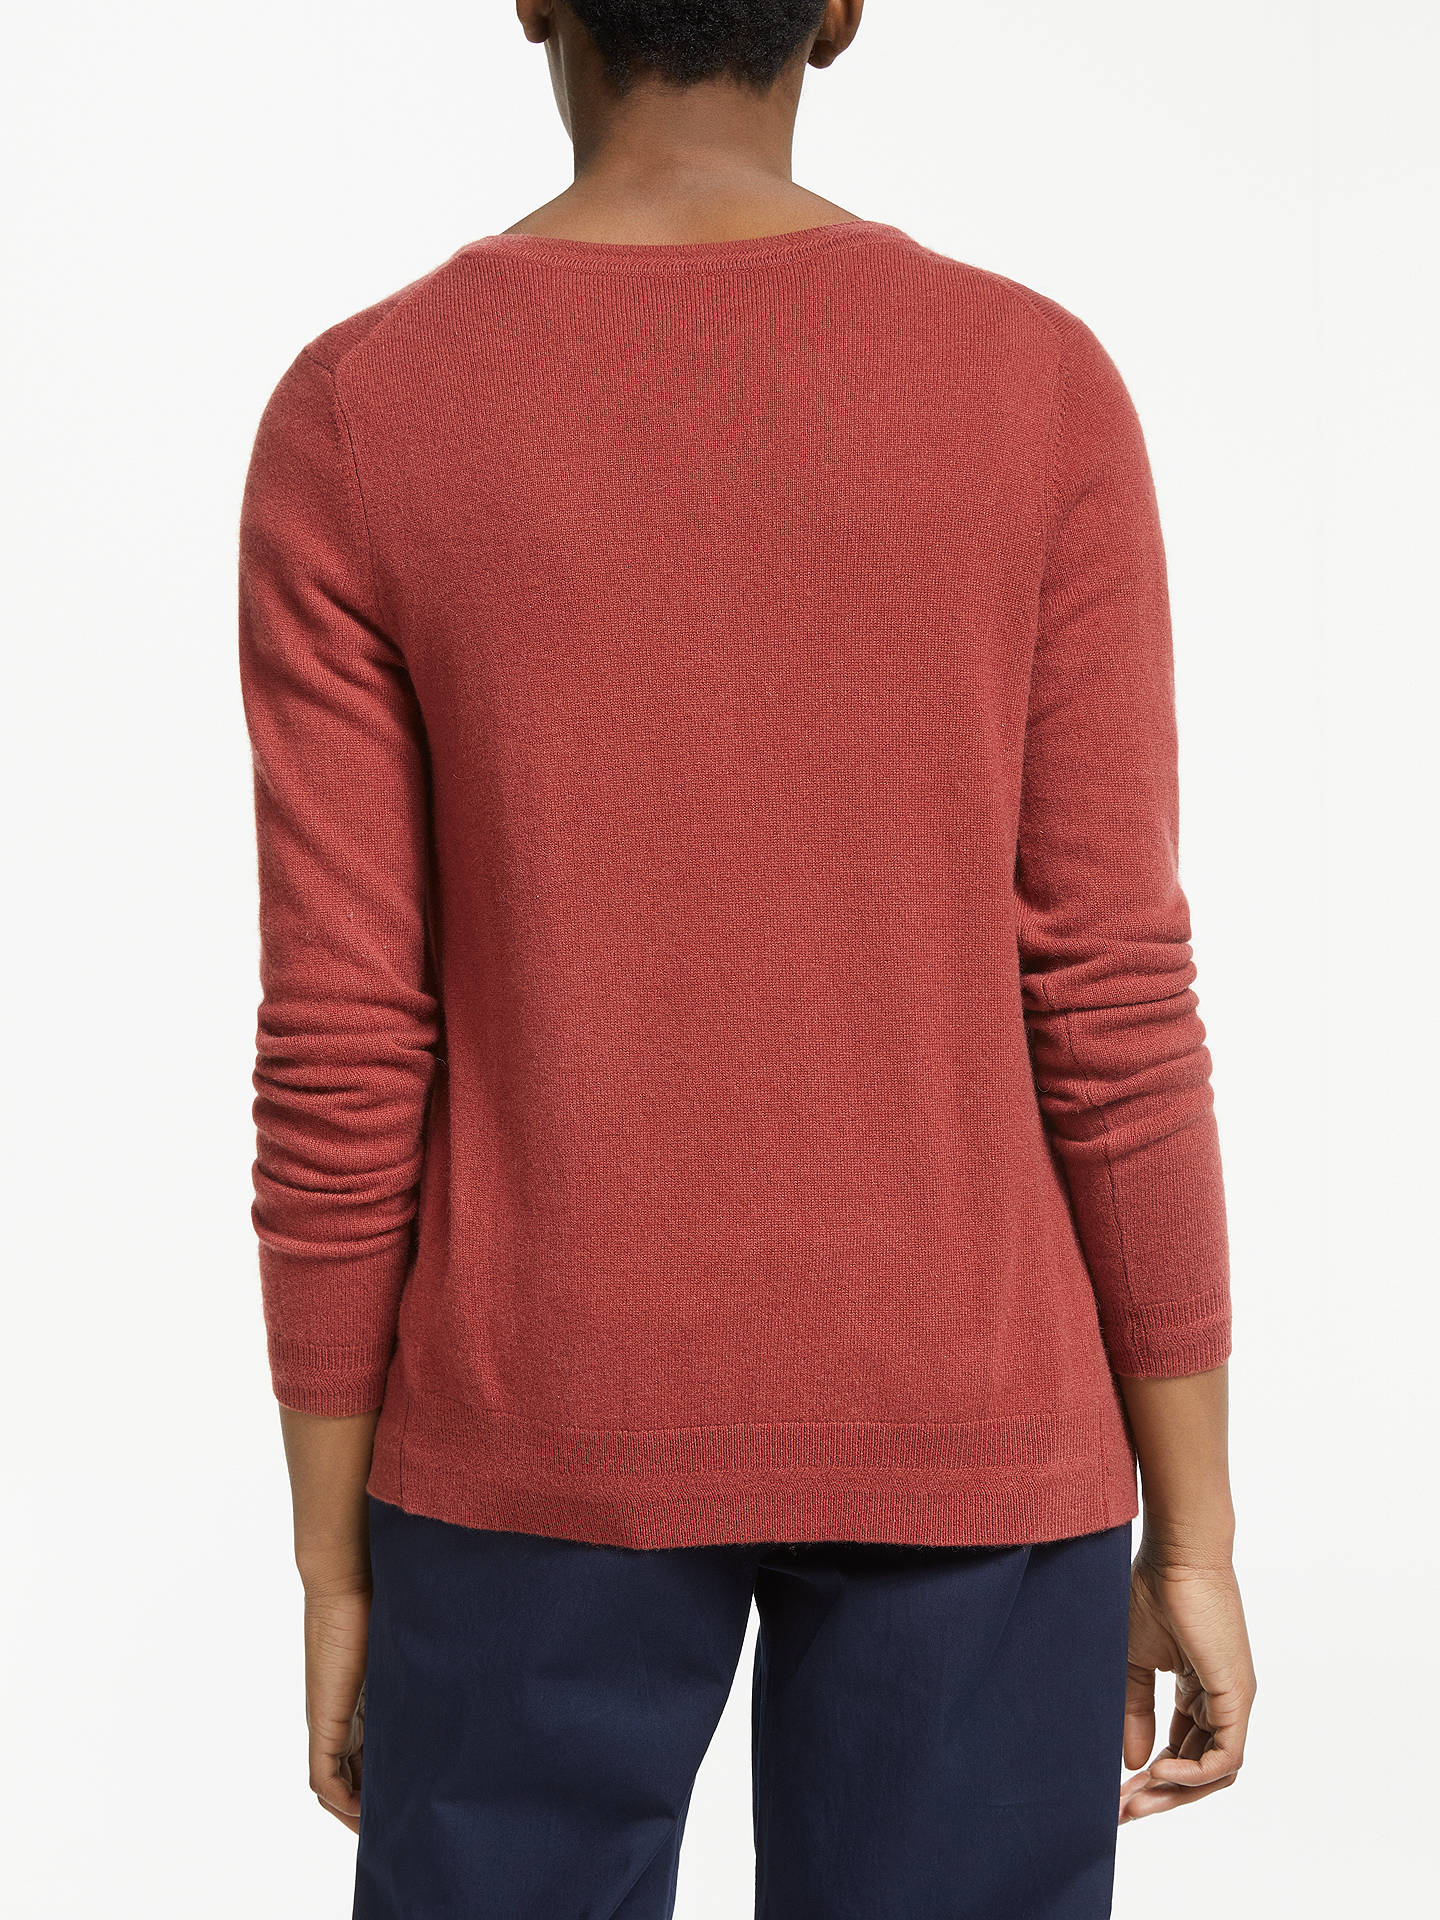 BuyBoden Cashmere Crew Neck Cardigan, Conker, XS Online at johnlewis.com